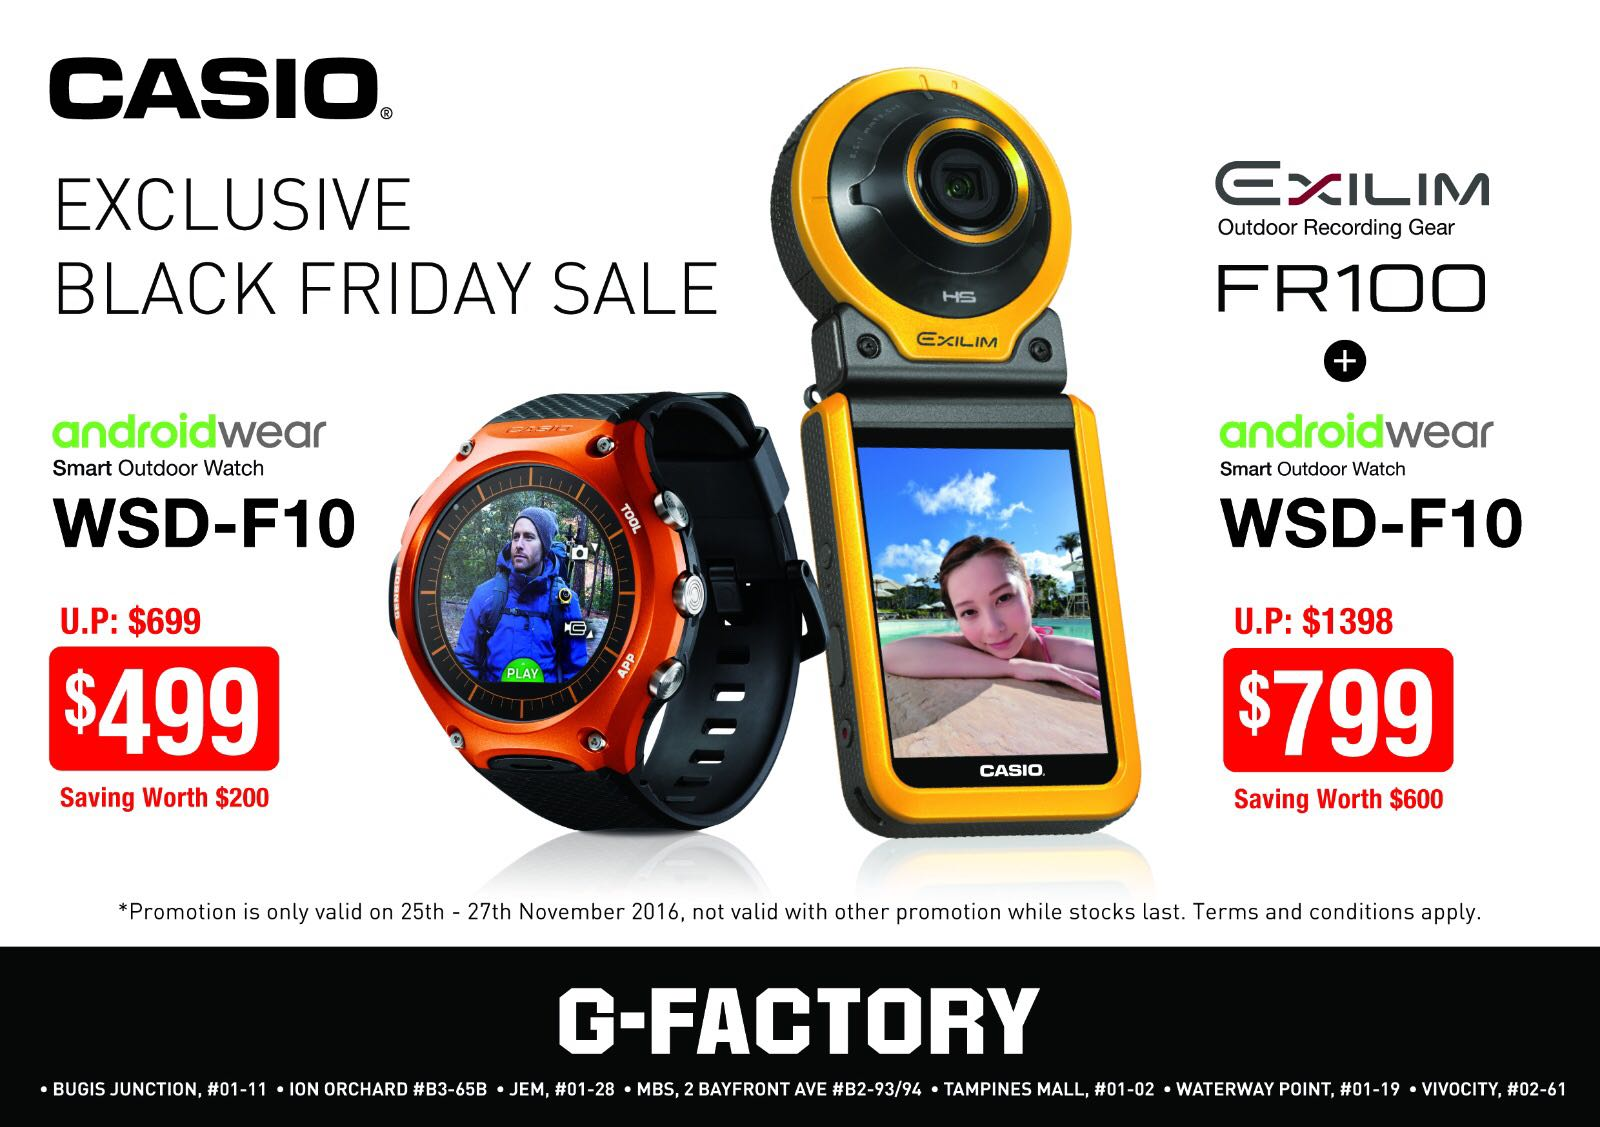 Grab the Black Friday sales offers from CASIO for three days only!